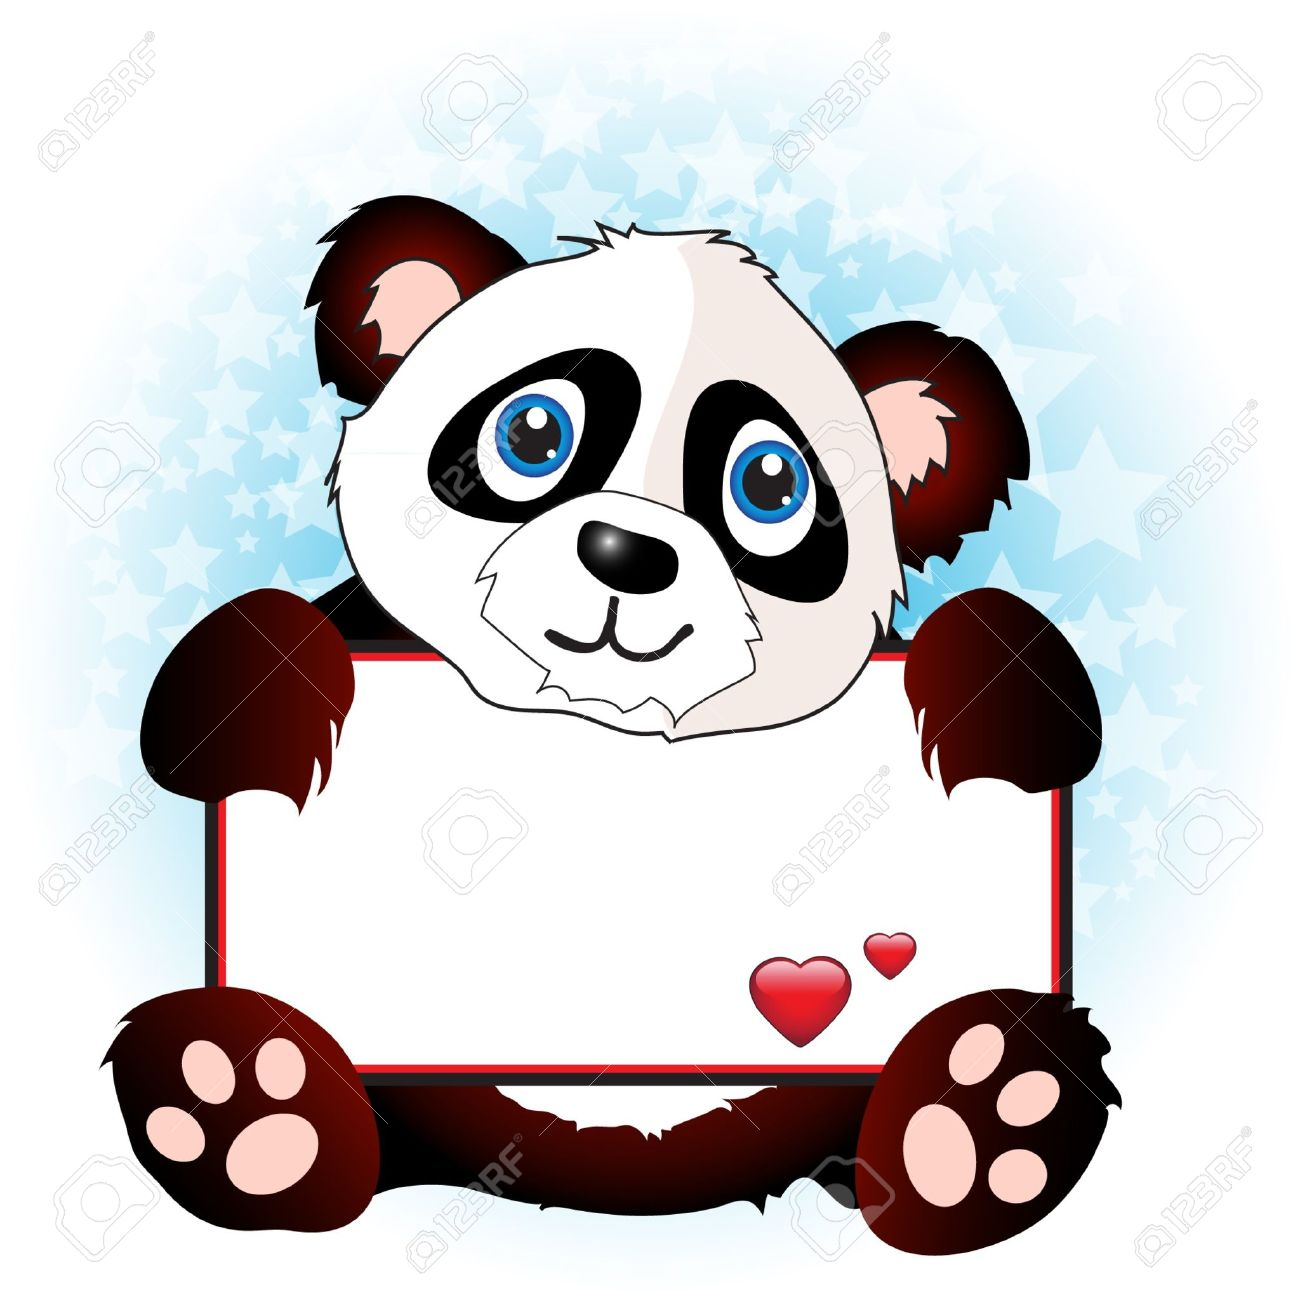 A cute cartoon panda holding a banner with hearts onsubtle star background. Space for your text. EPS10 vector format Stock Vector - 10631584